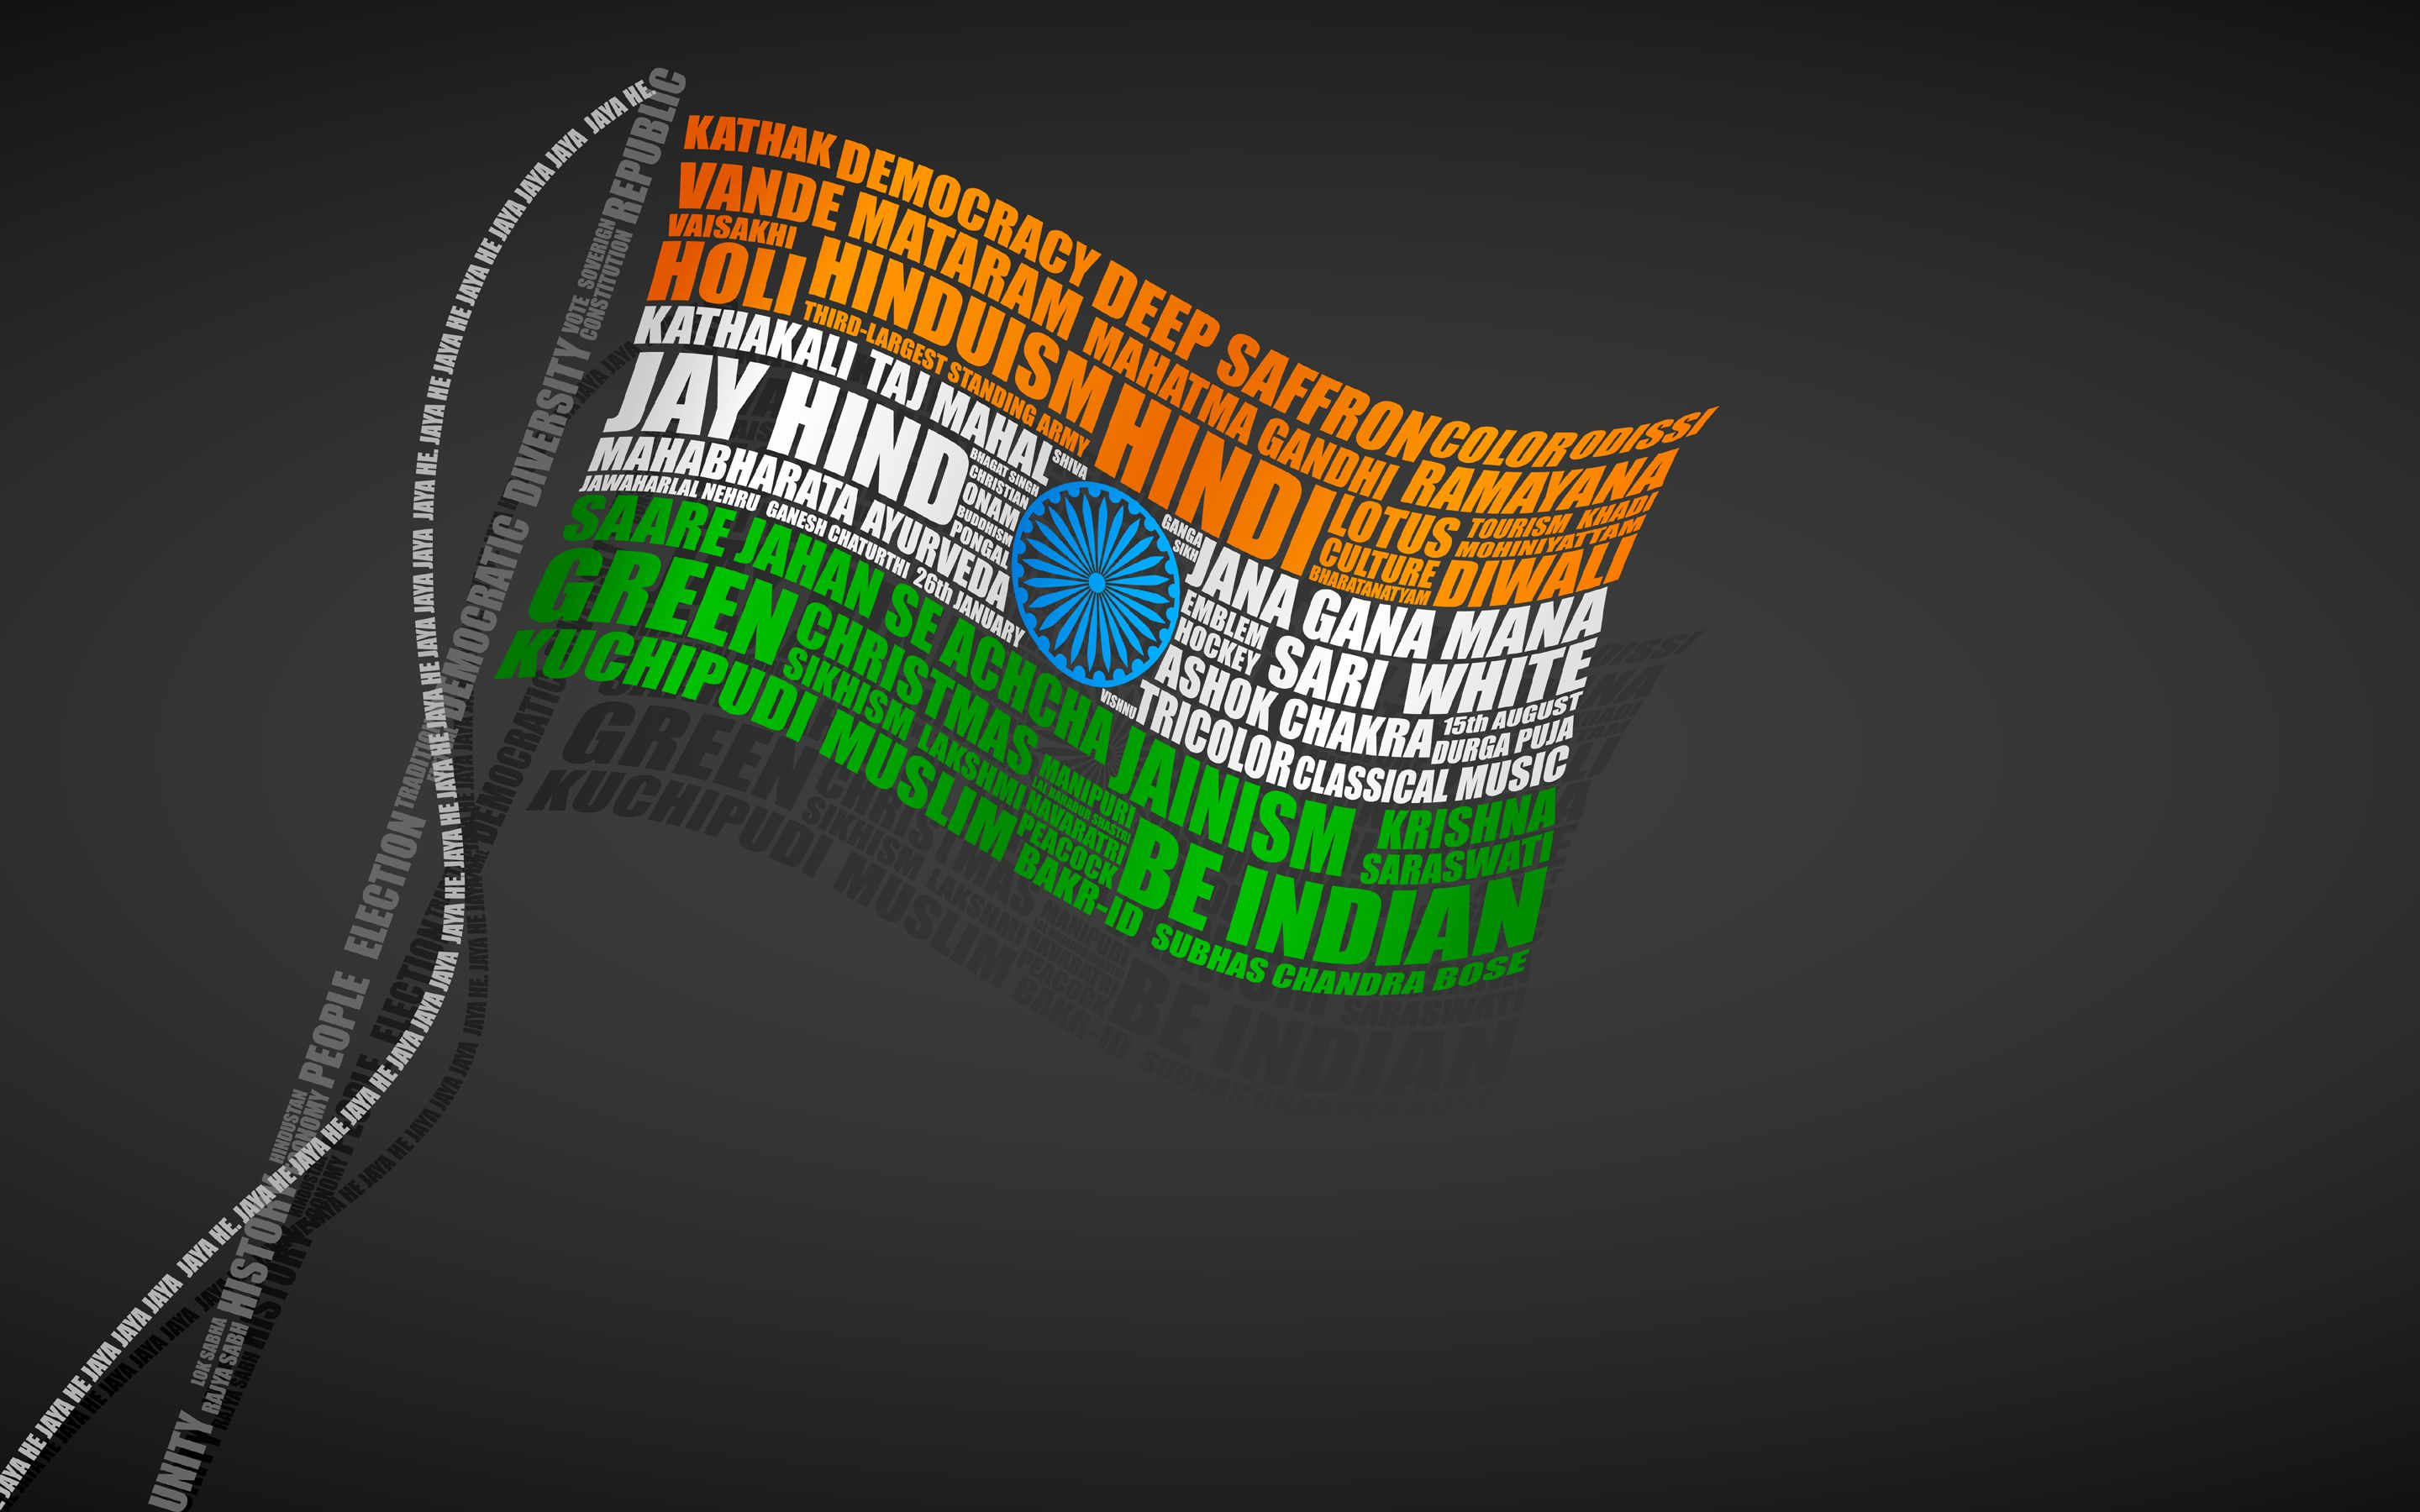 Hd wallpaper indian - Happy Independence Day Patriotic Slogans Independence Day India Hd Wallpapers And 3d Patriotic Images Of